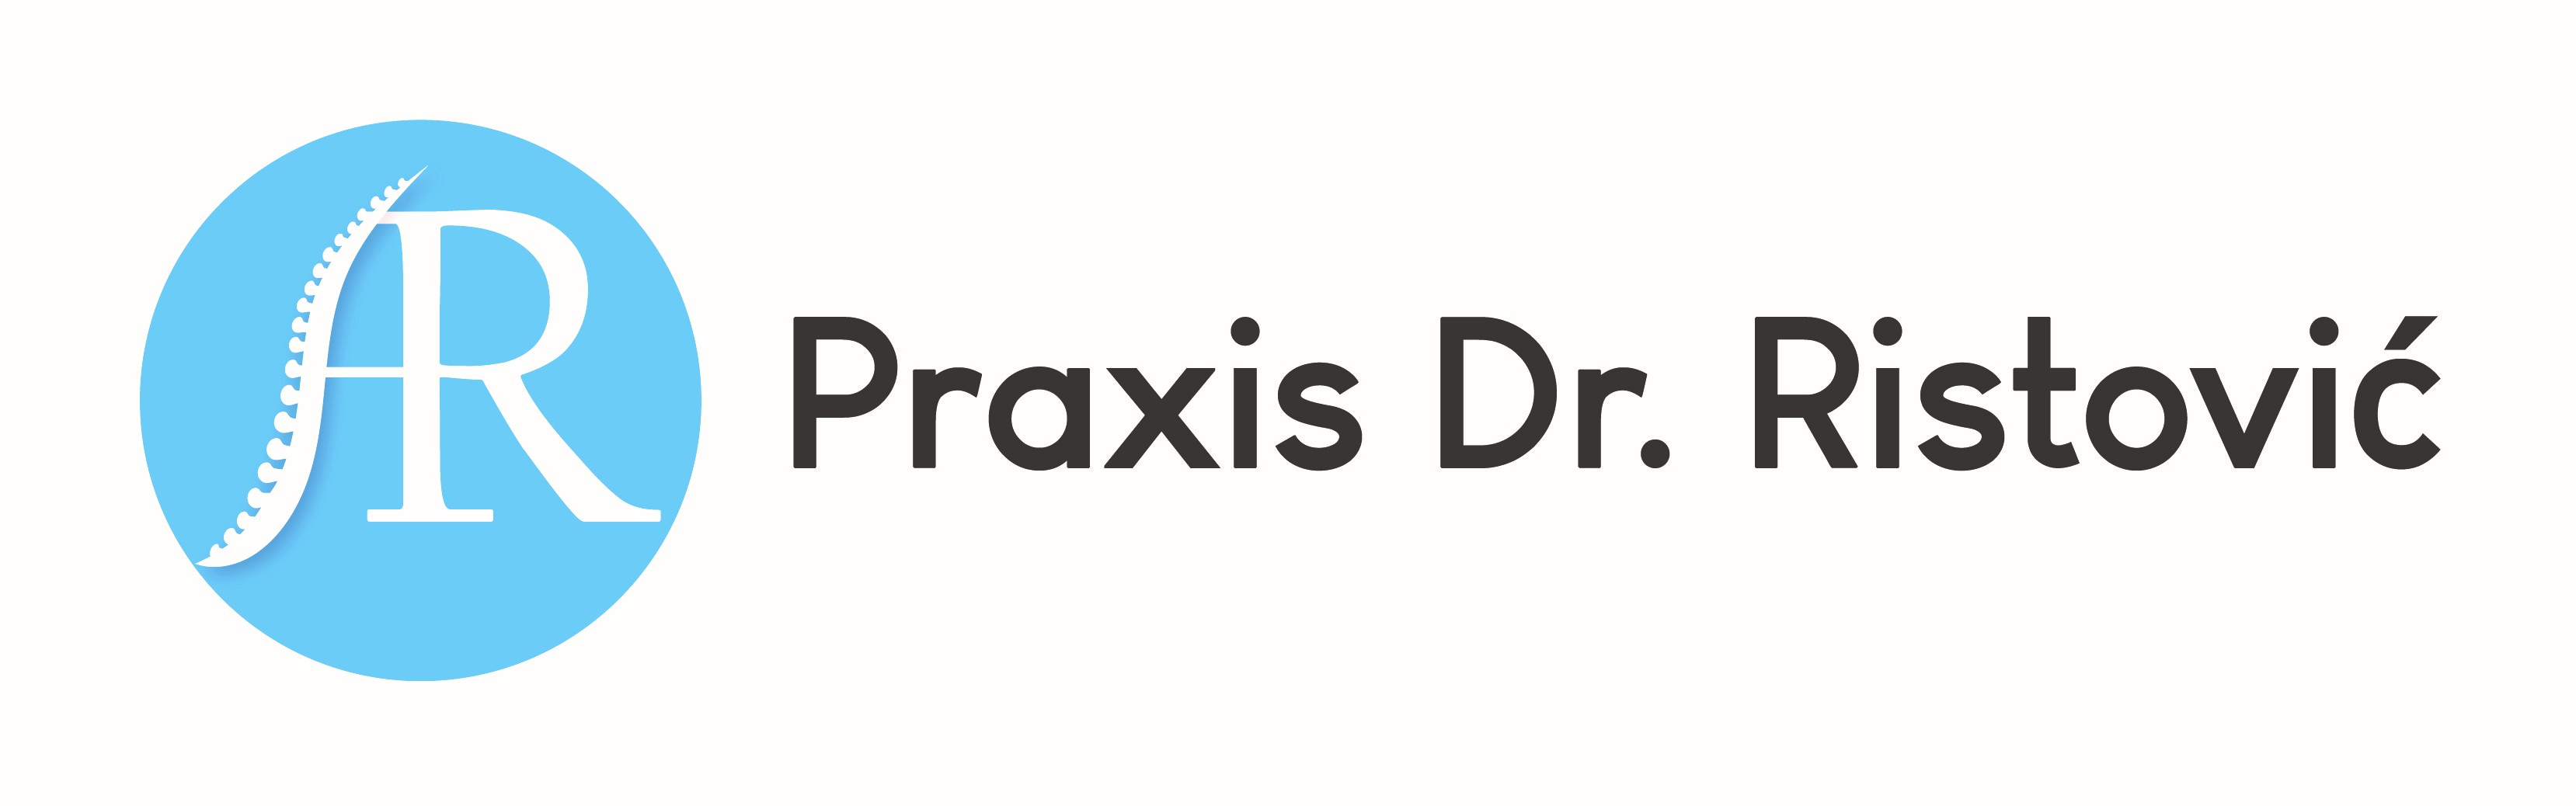 //bcdivac.ch/wp-content/uploads/2020/07/Logo___Praxis_Dr_Ristovic_na_belom_2.jpg